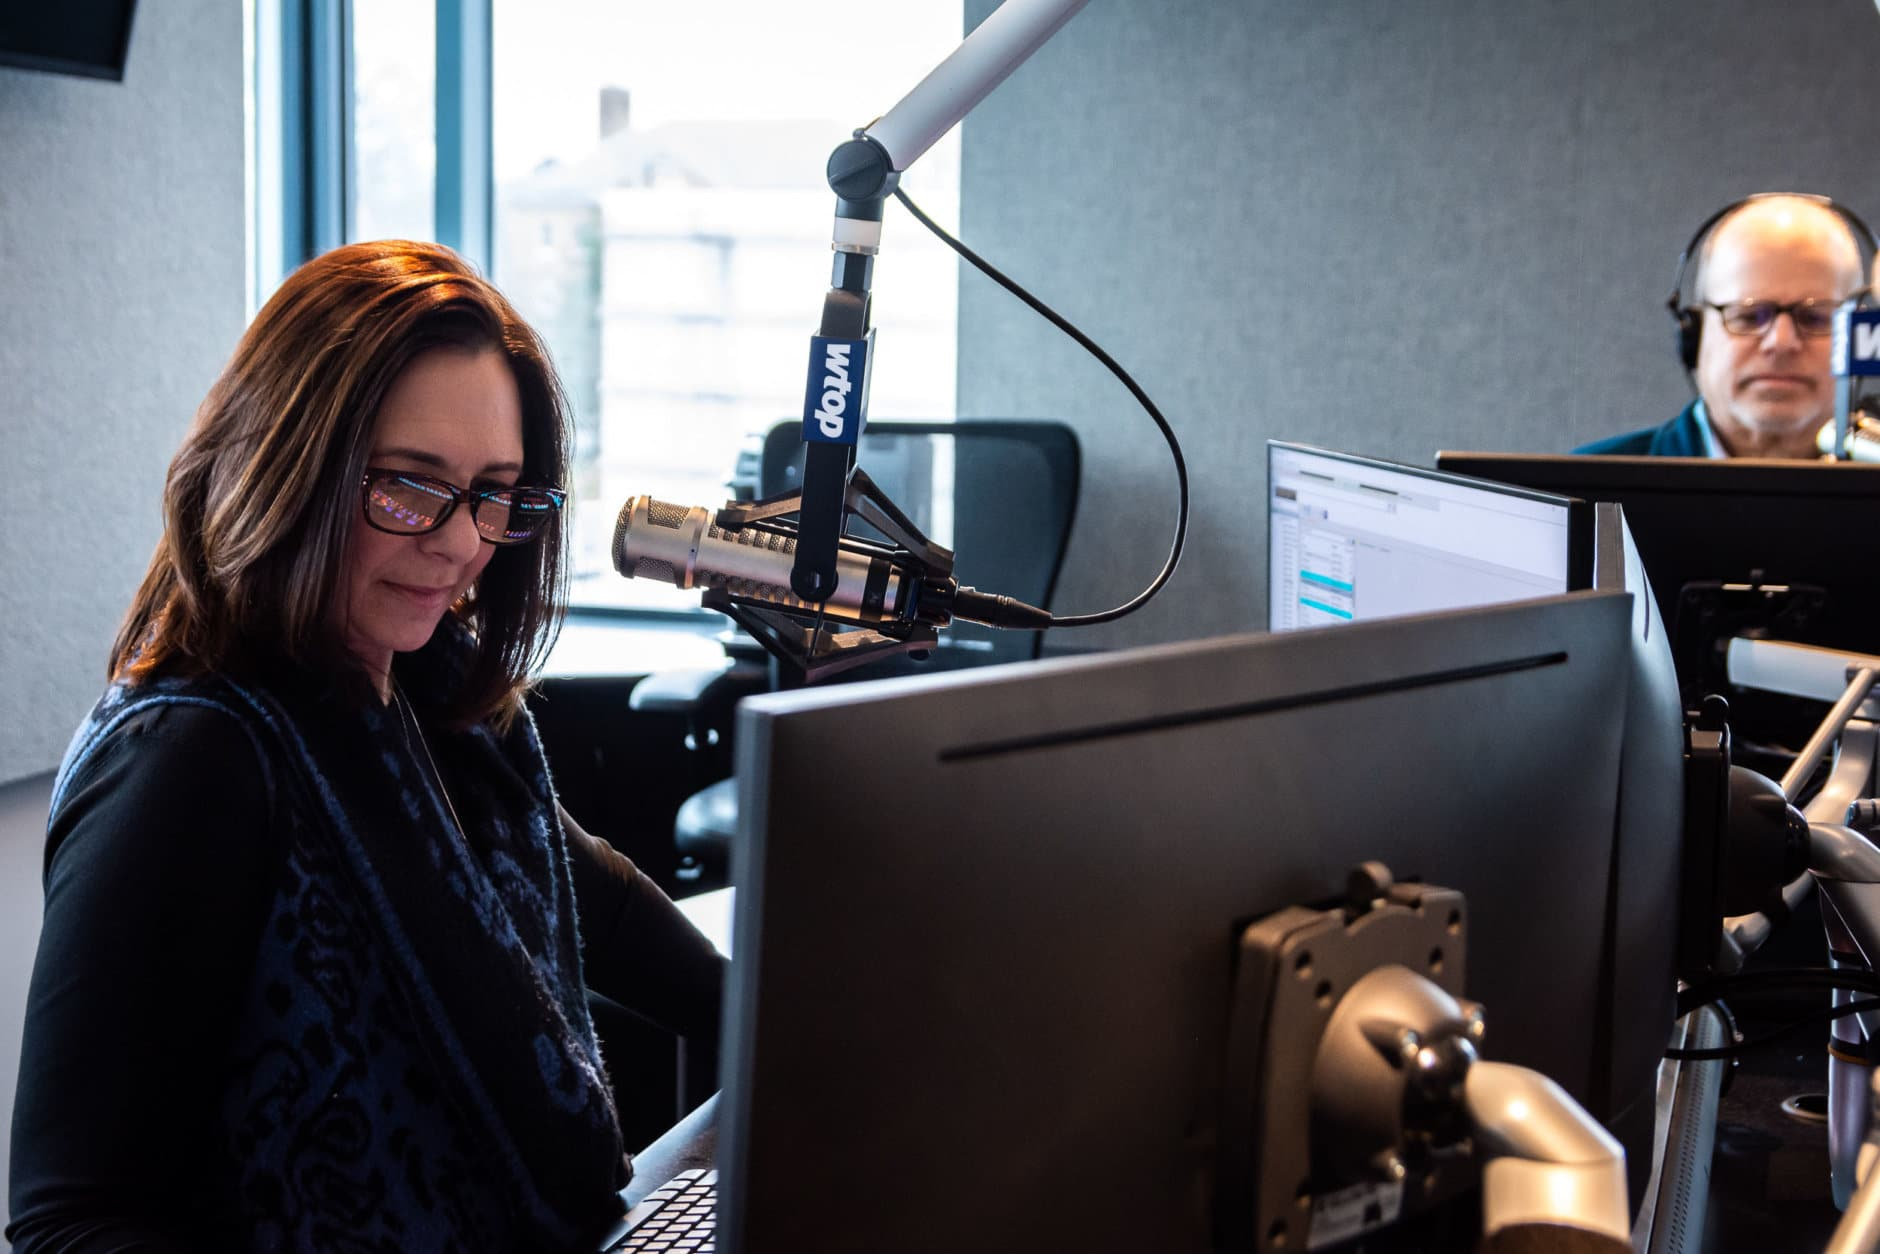 Anchor Joan Jones tests WTOP's new ad management and audio playback software during an off-air practice run on Jan. 29. While the majority of WTOP's broadcast is recorded live in-house, pre-recorded reporter stories, segment transitions and ads are played back by anchors using the main studio's mixing board. (WTOP/Alejandro Alvarez)